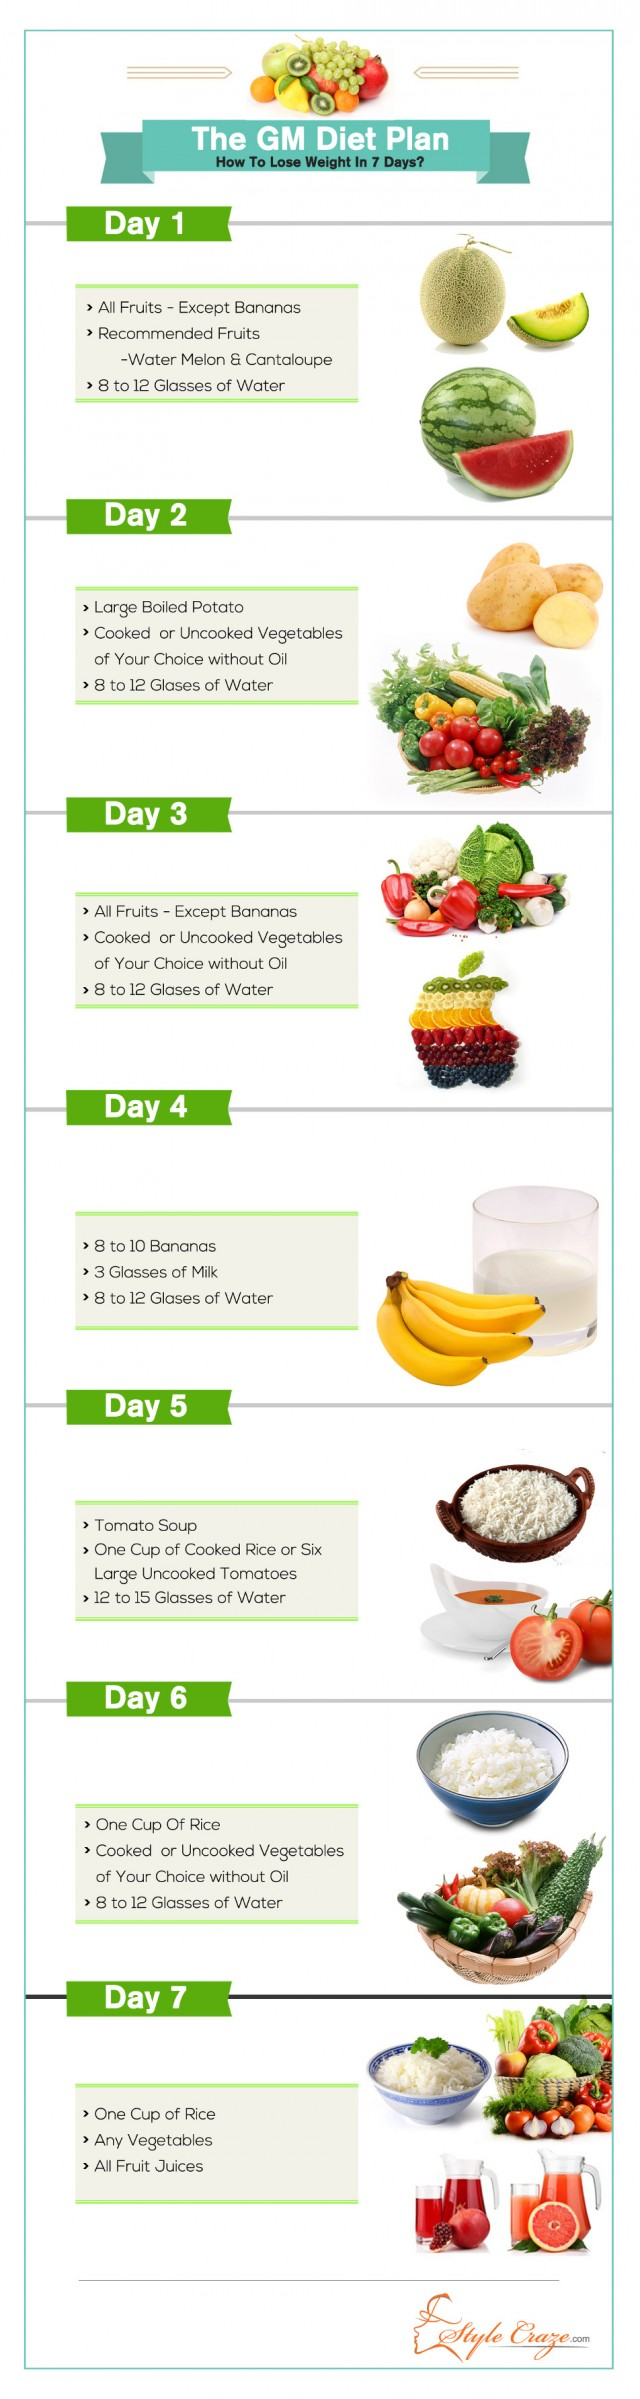 gm diet plan for weight loss